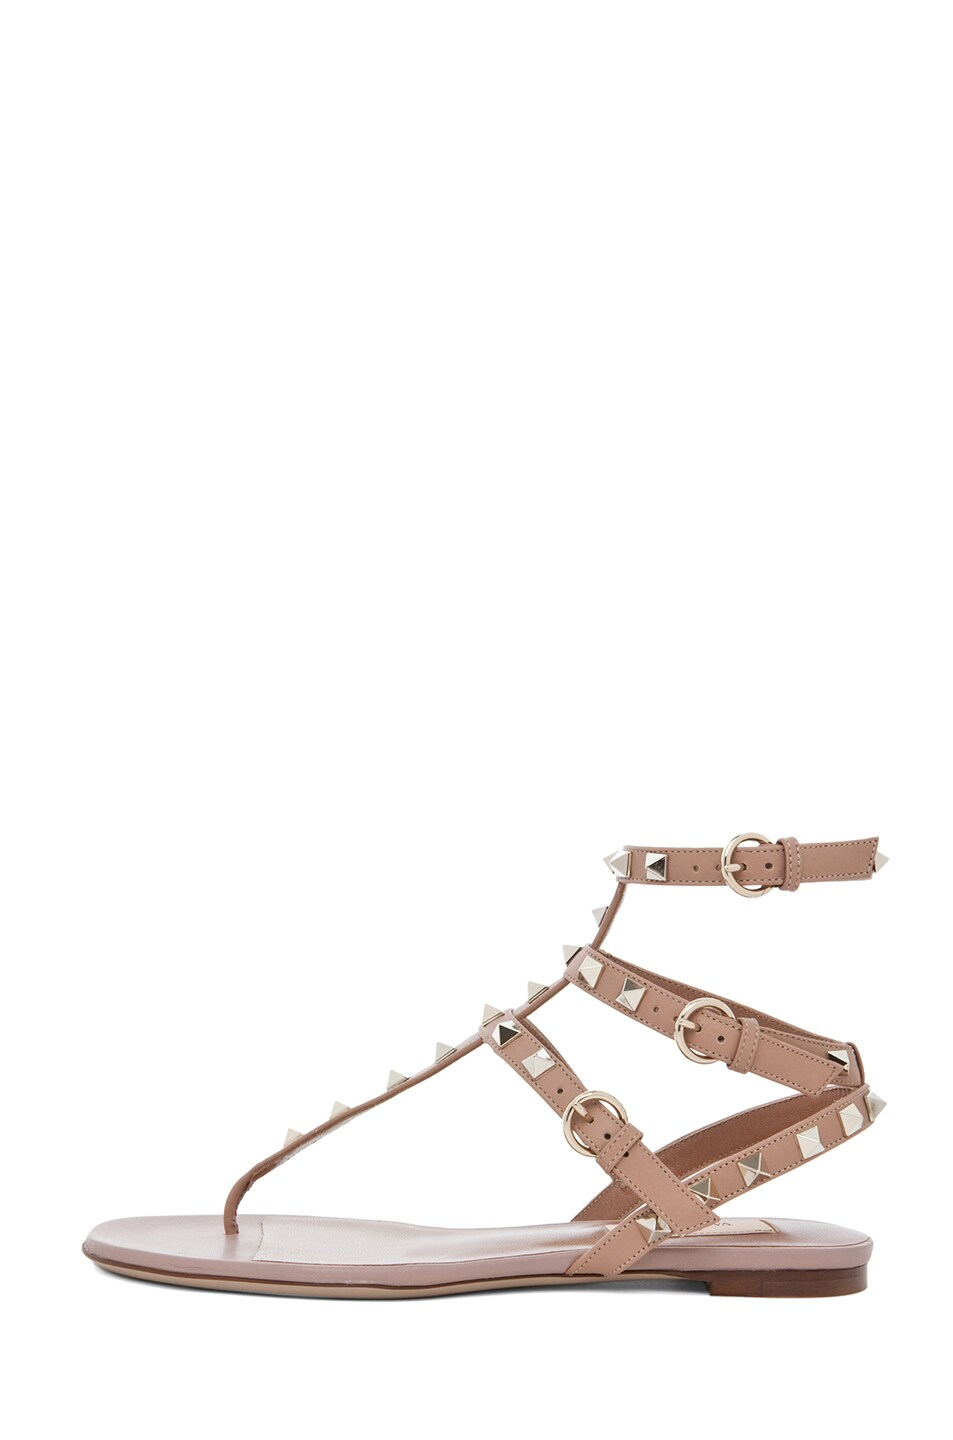 Image 1 of Valentino Rockstud Leather Gladiator Sandal T.05 in Soft Hazelnut & Nude & Platinum